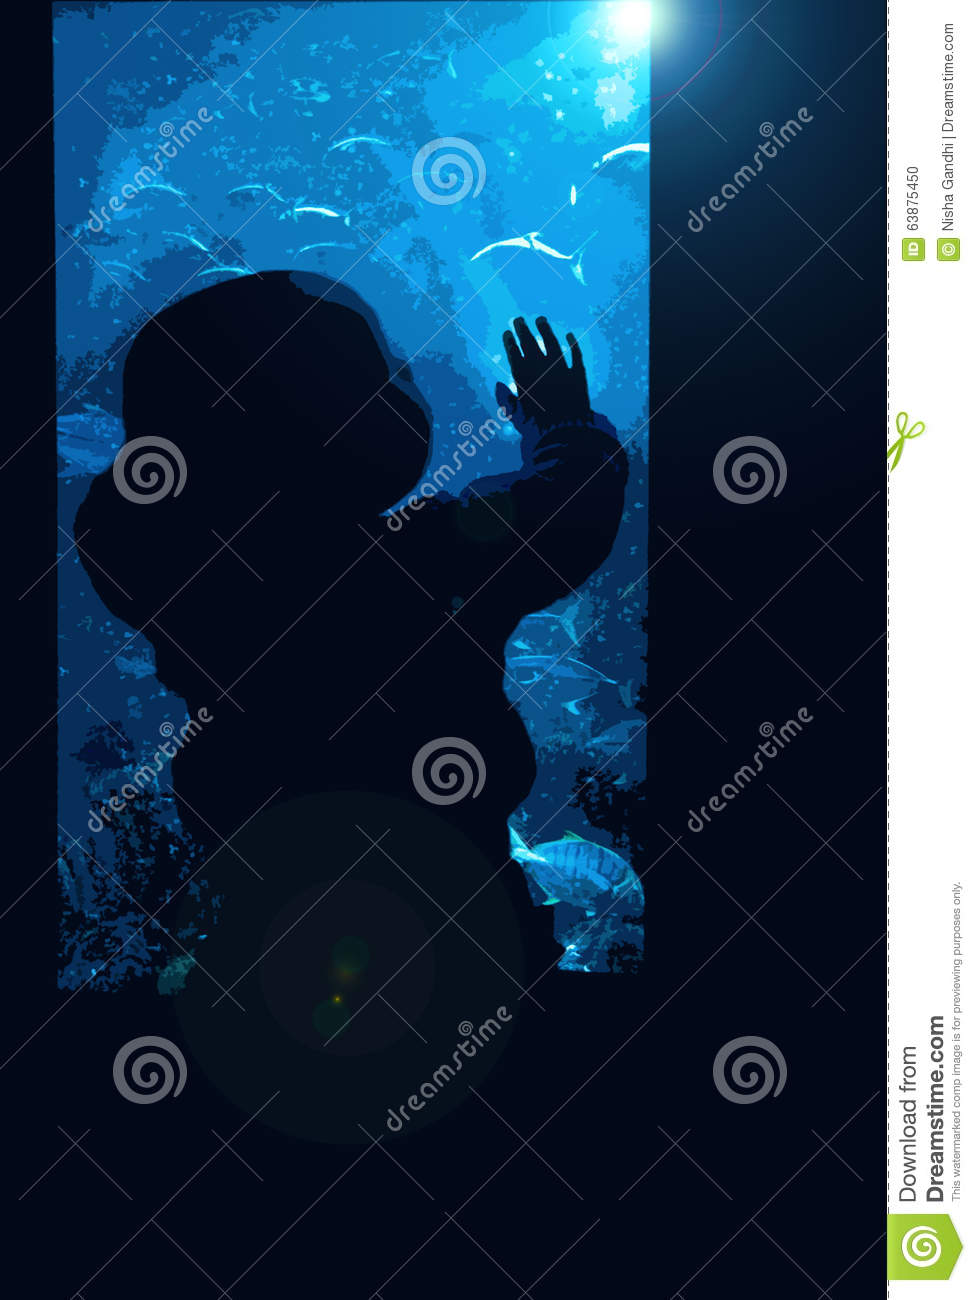 A Small Baby Toddler Watching The Fish In The Water With